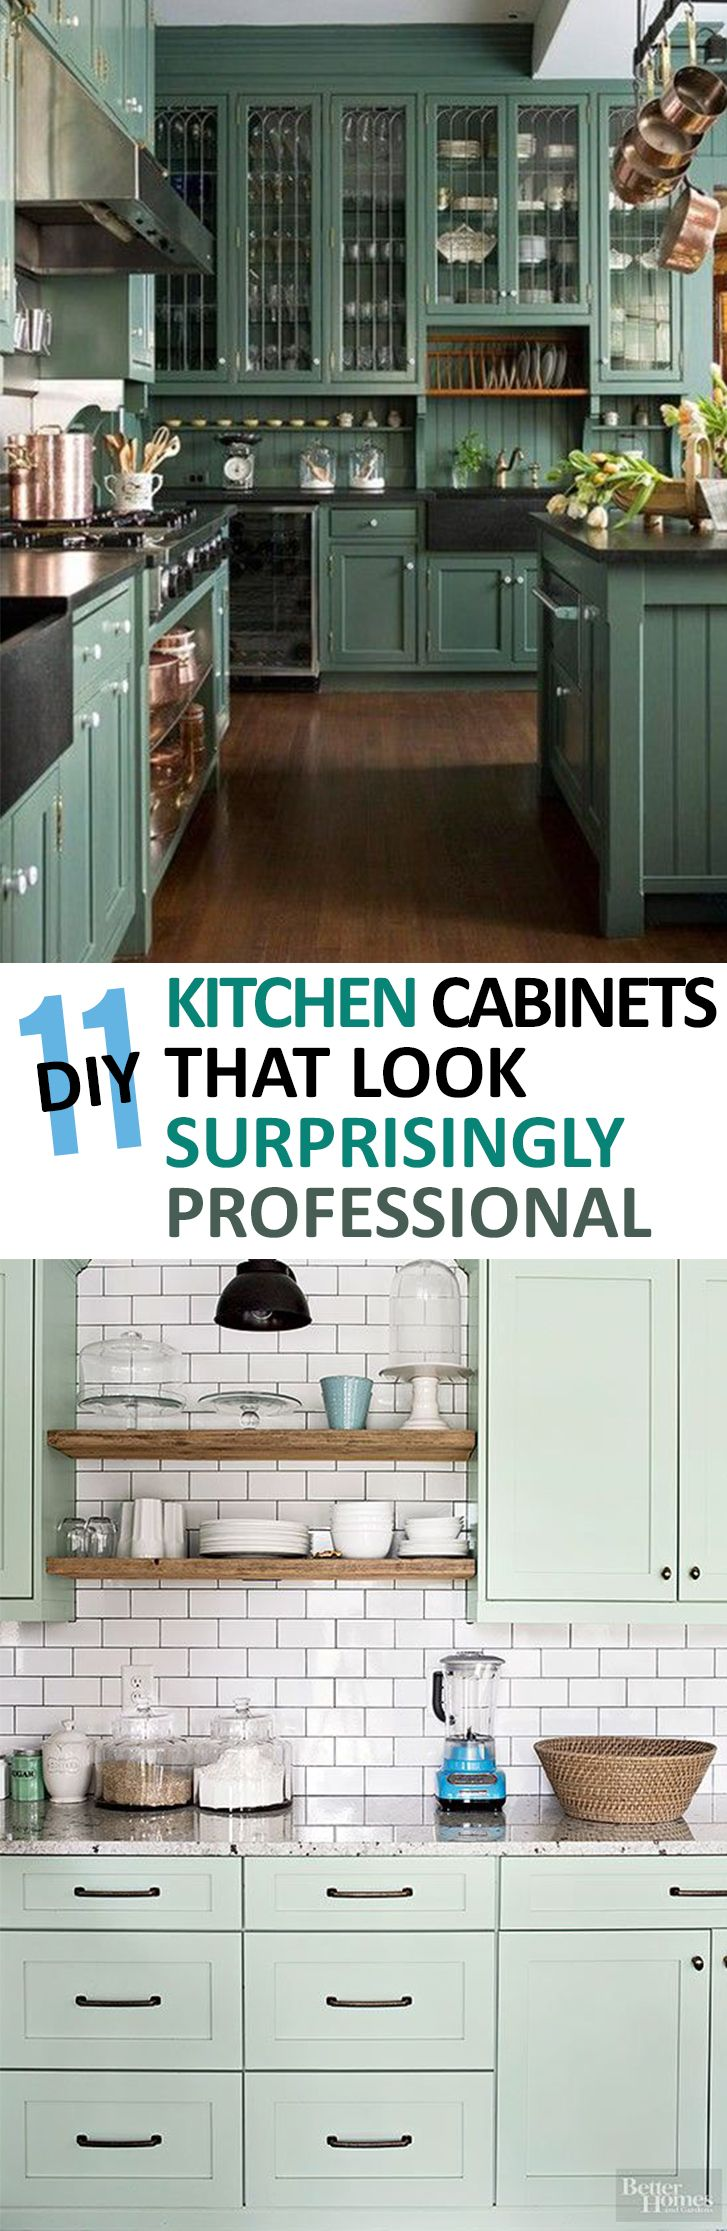 get 20 kitchen cabinet remodel ideas on pinterest without signing